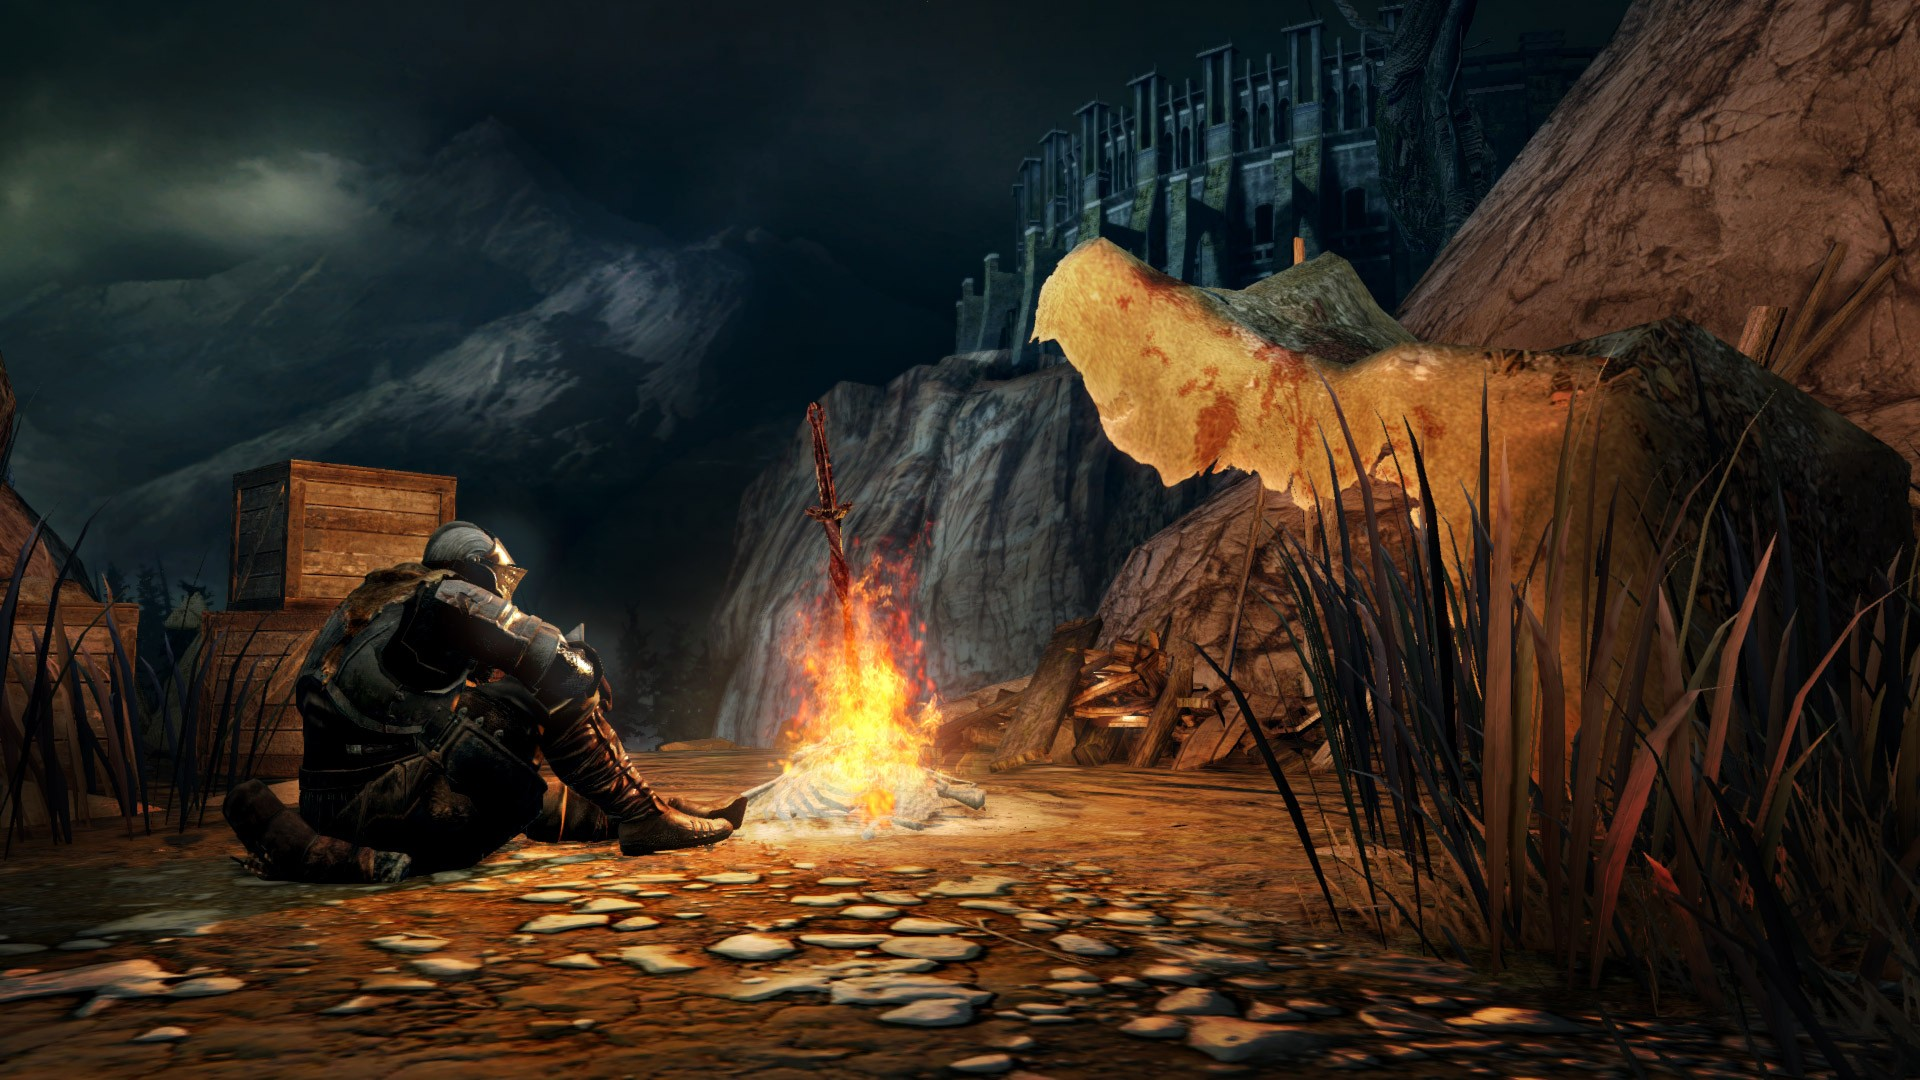 Dark Souls Bonfire Wallpaper Download Free Amazing High